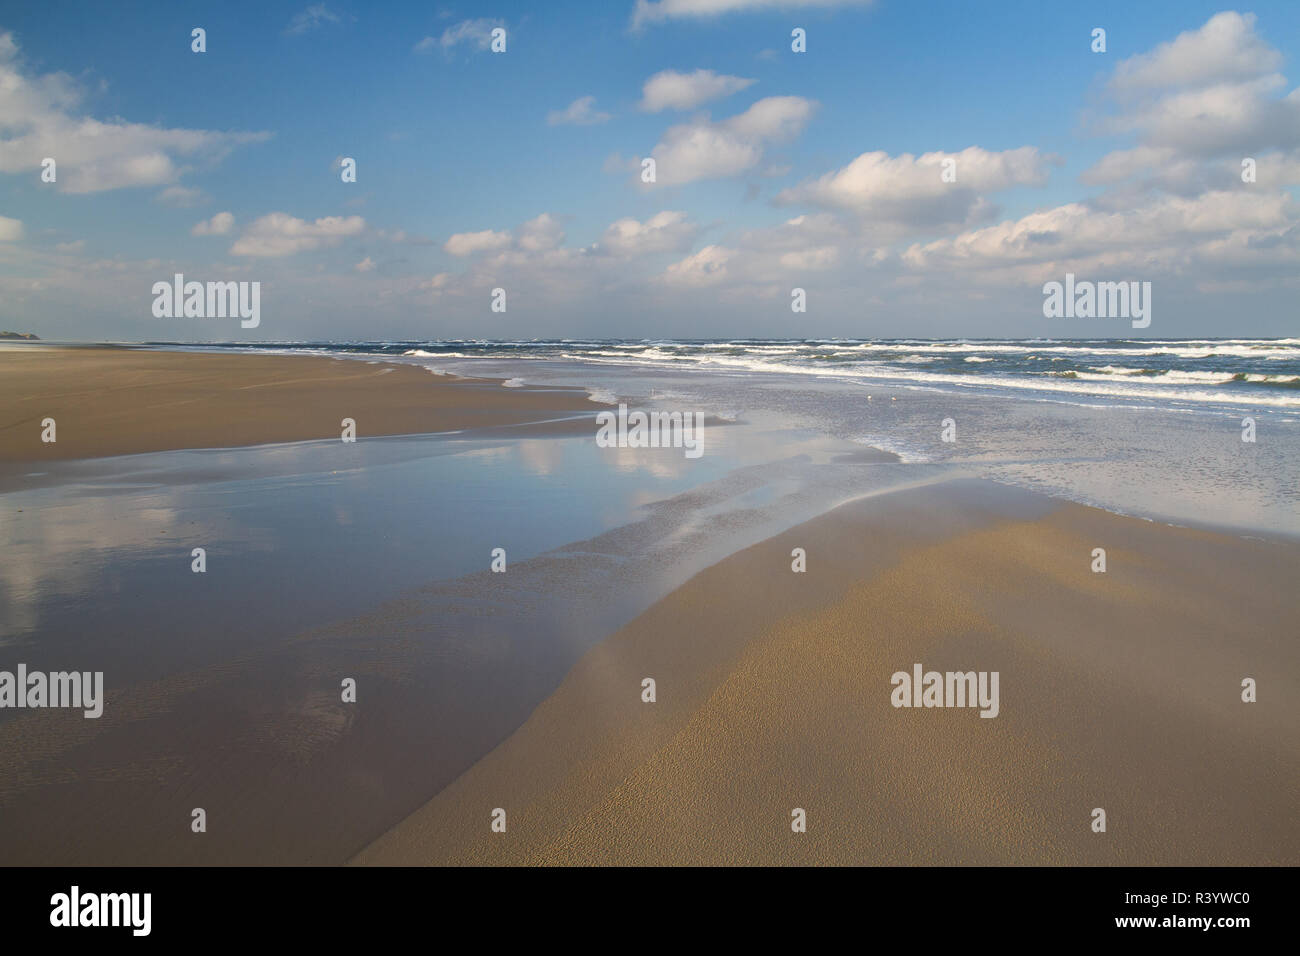 Vast beach at ebb tide, blue sky and white clouds reflected in the water of a gully - Stock Image